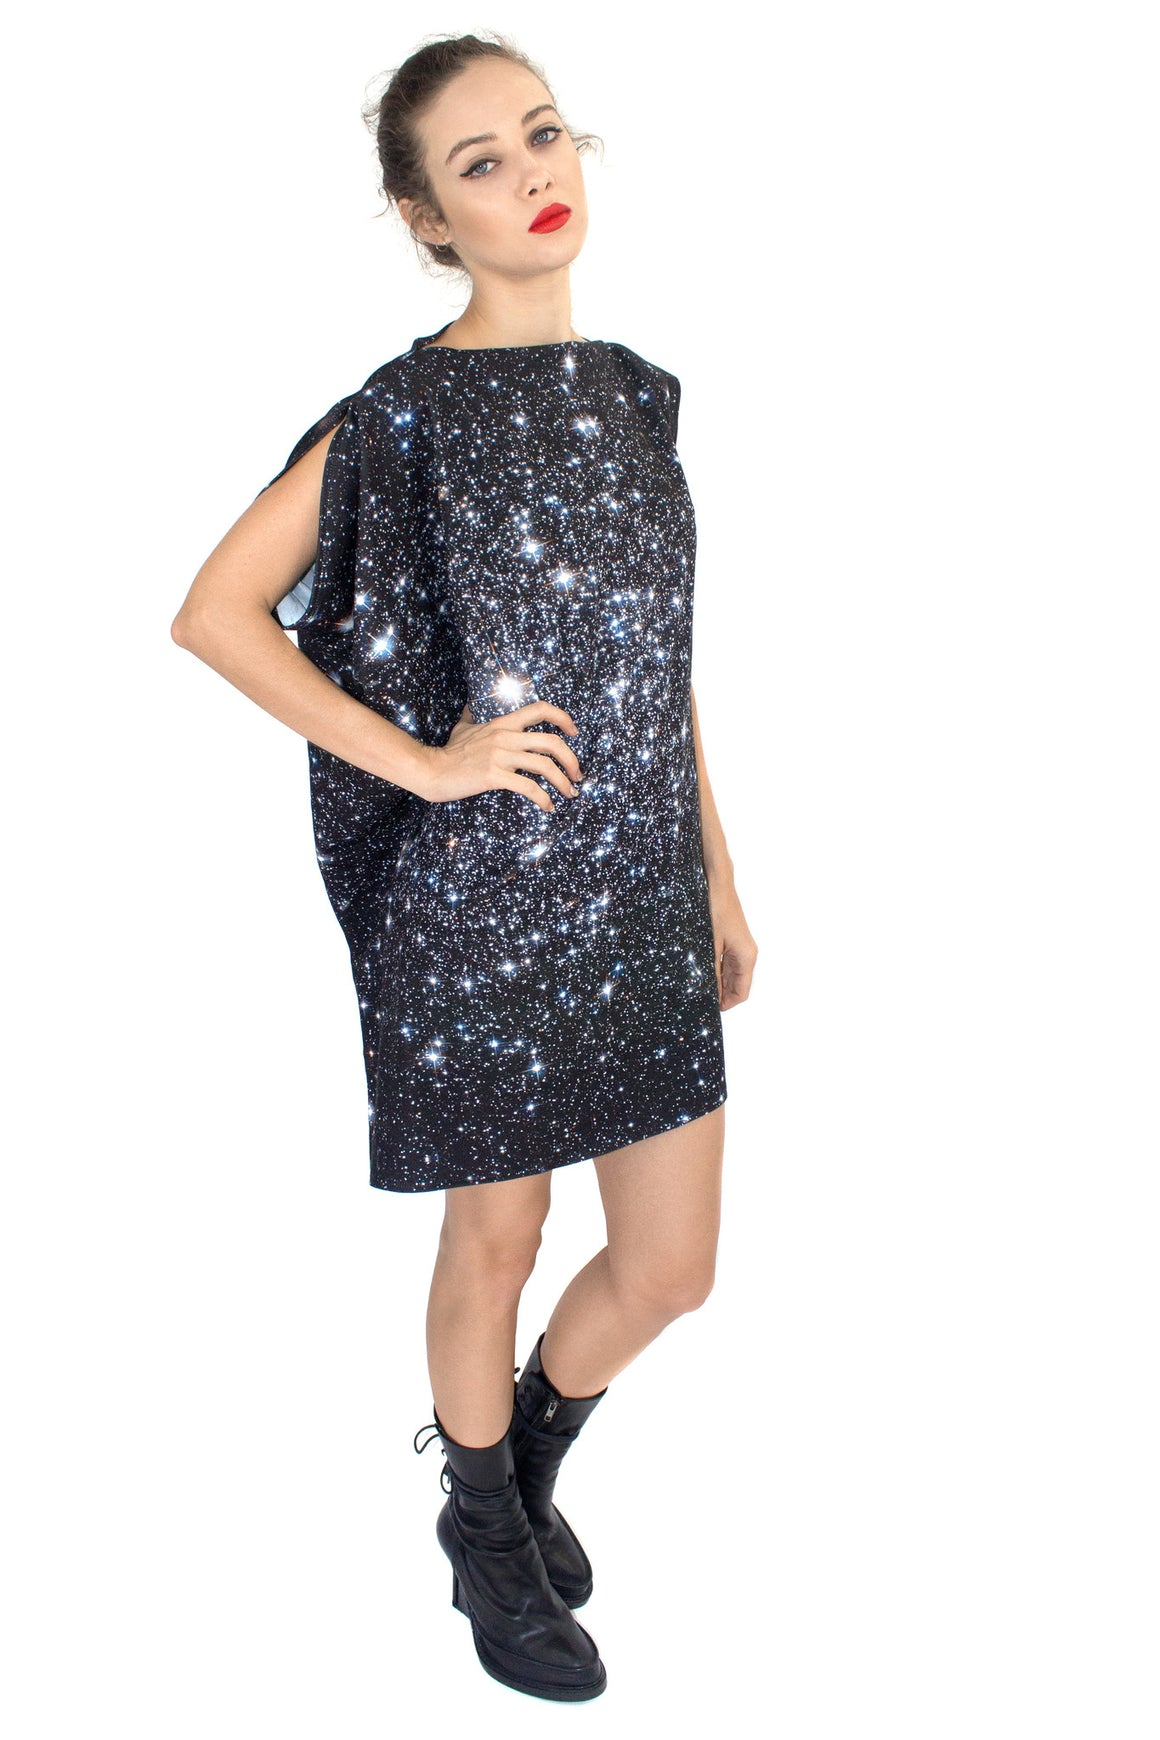 Star Cluster Jersey Dress, Shadowplay New York, Galaxy Print Clothing